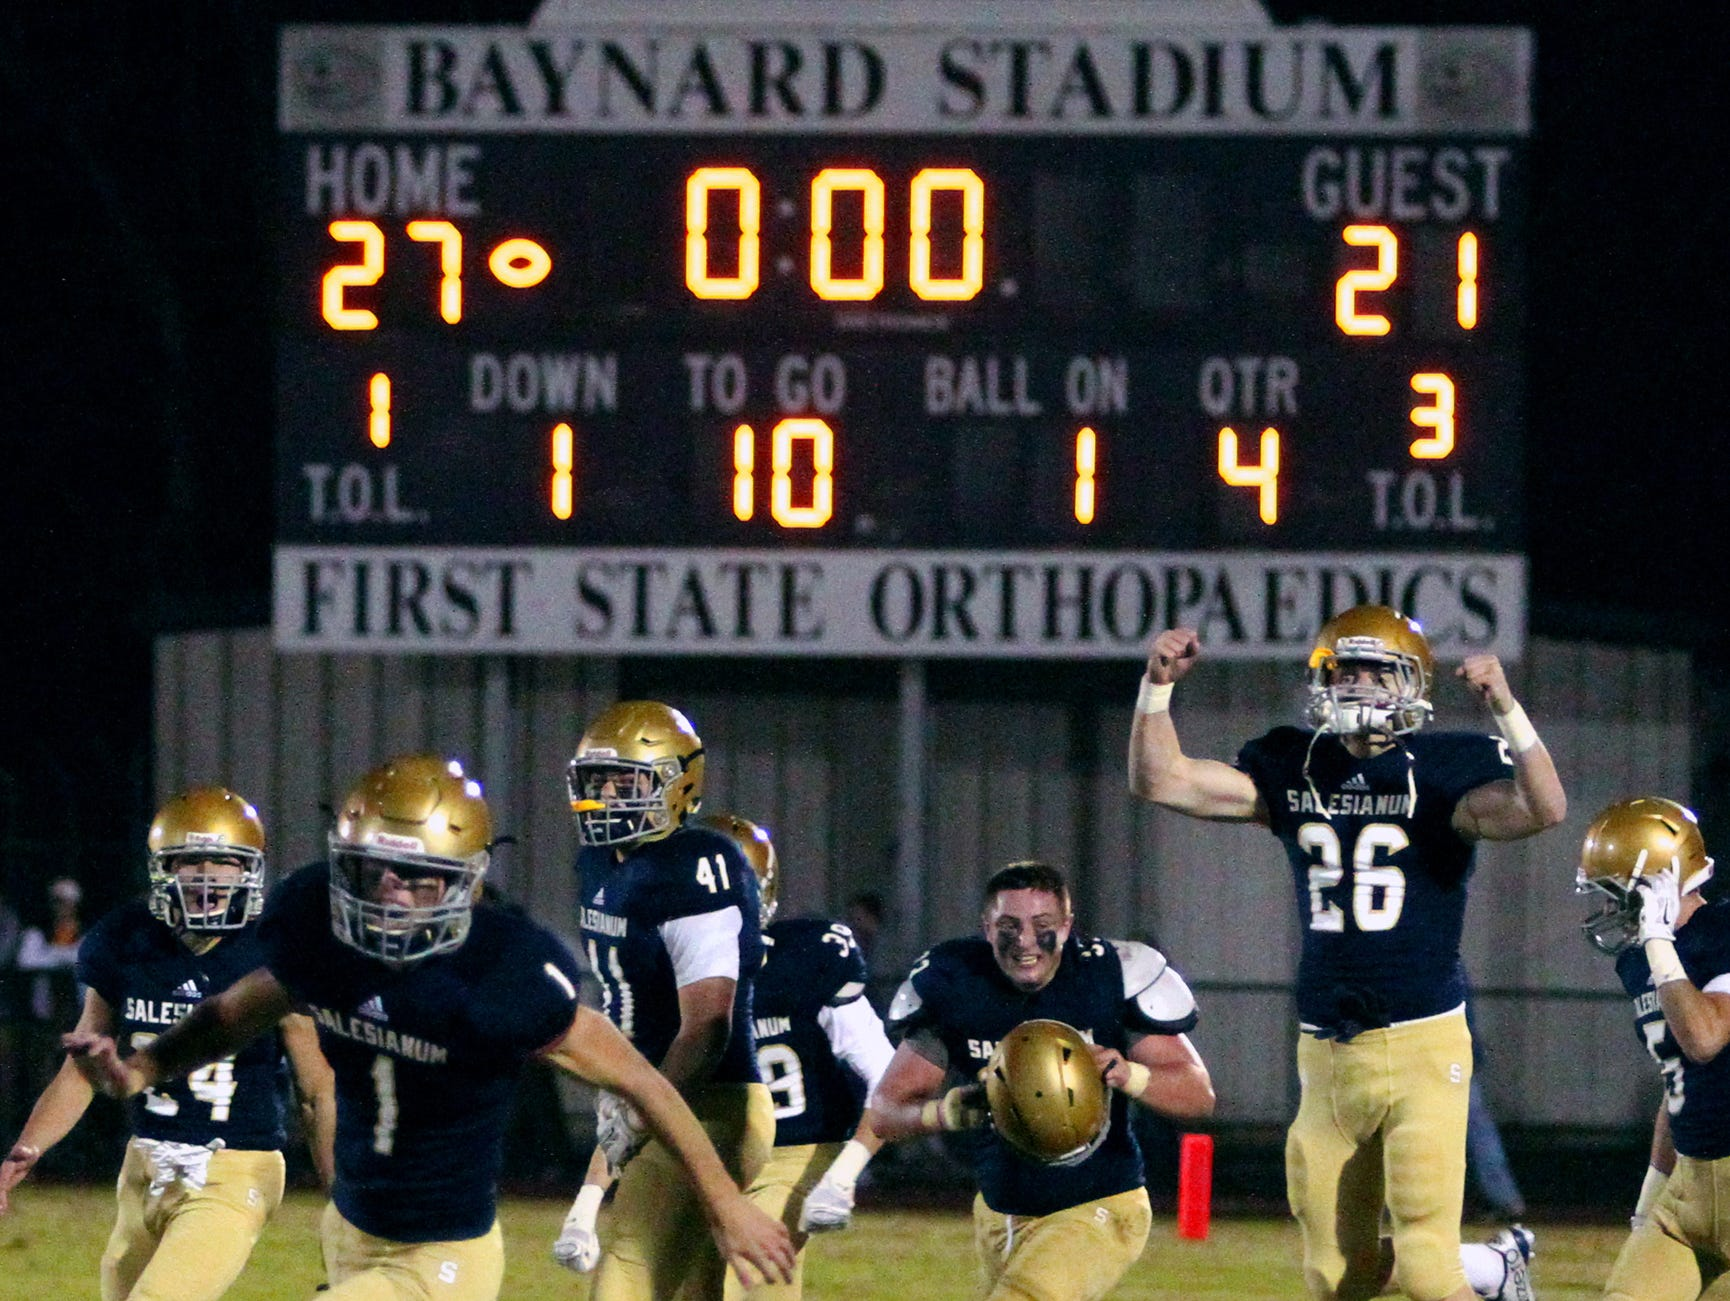 Salesianum celebrates its win against Middletown after the final play in a DIAA Division I state tournament semifinal at Baynard Stadium Friday.